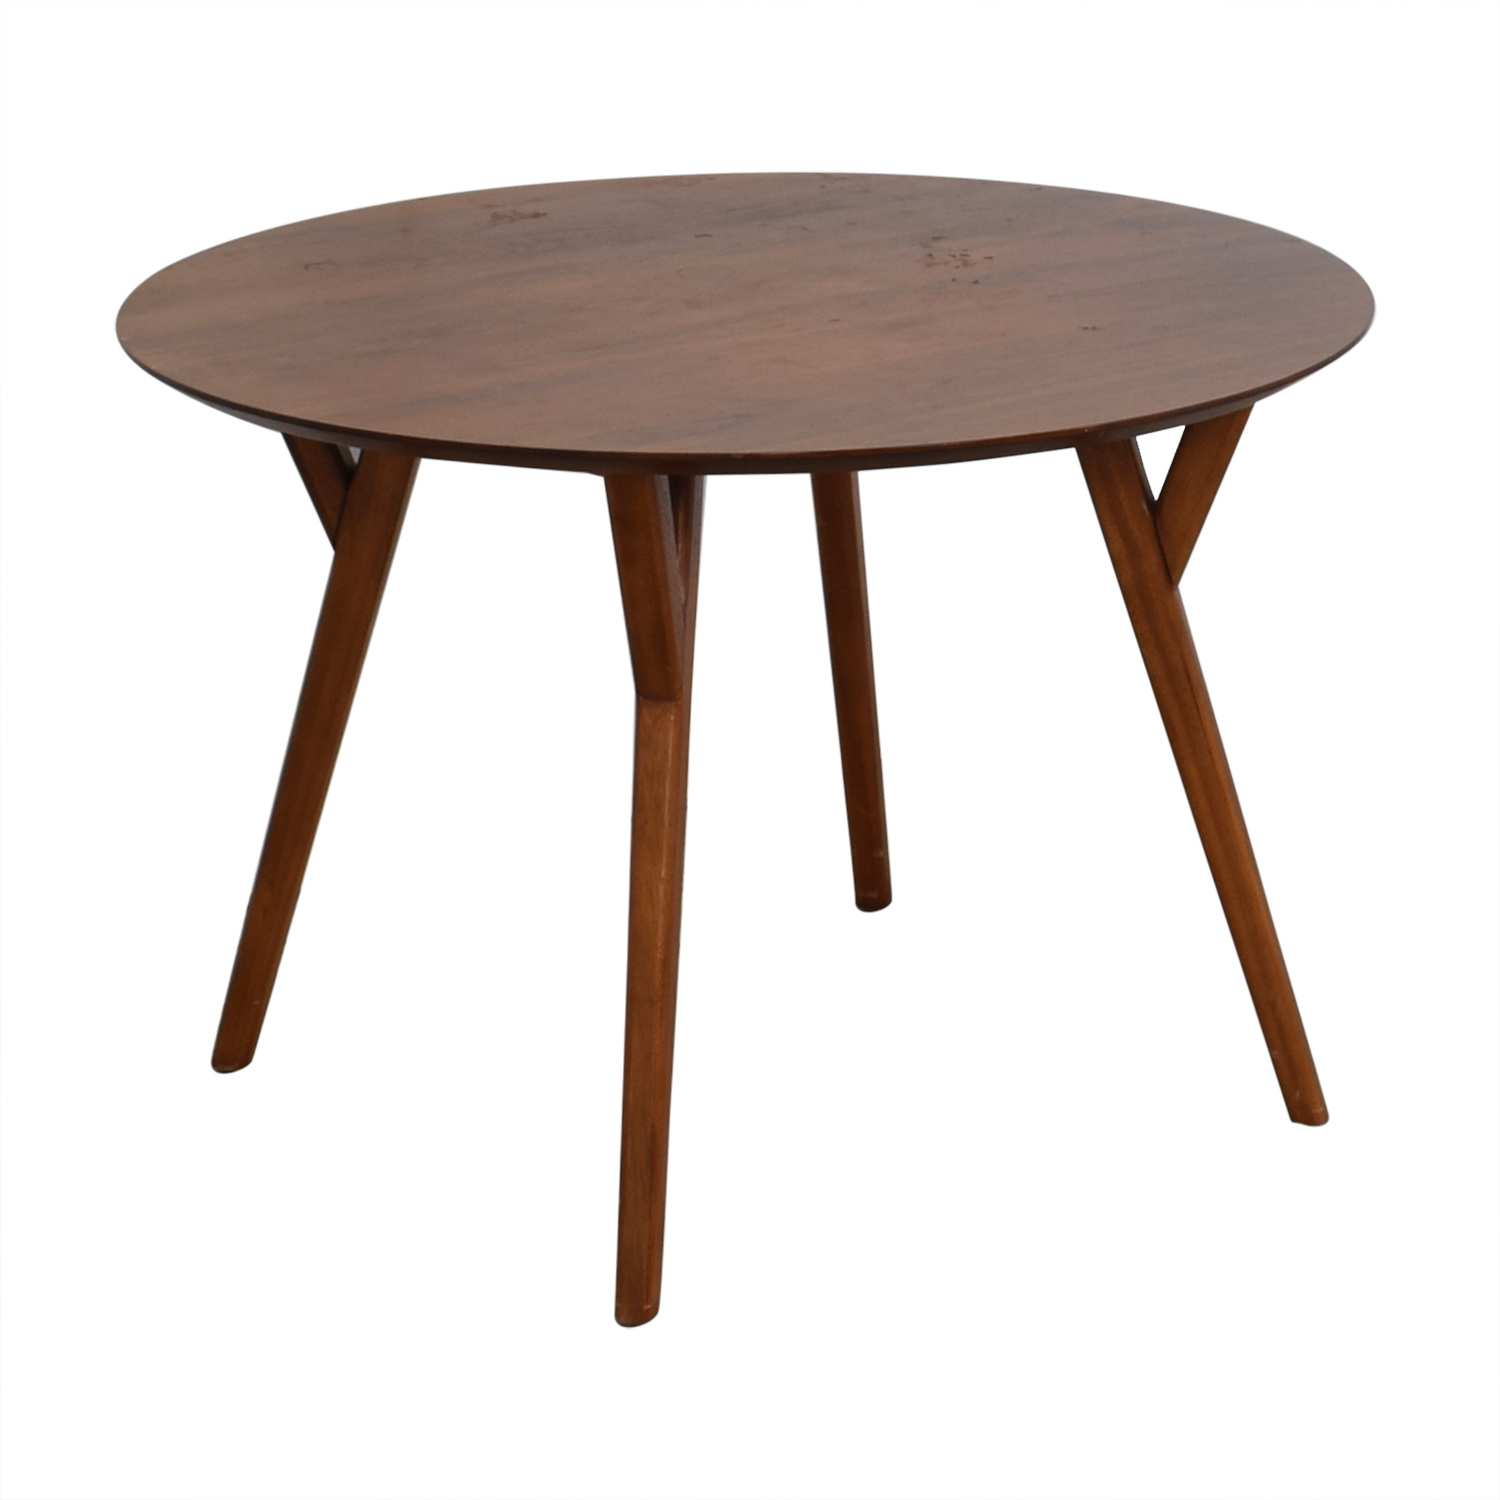 69% Off – West Elm West Elm Round Dining Table / Tables Pertaining To Most Up To Date West Dining Tables (View 9 of 25)